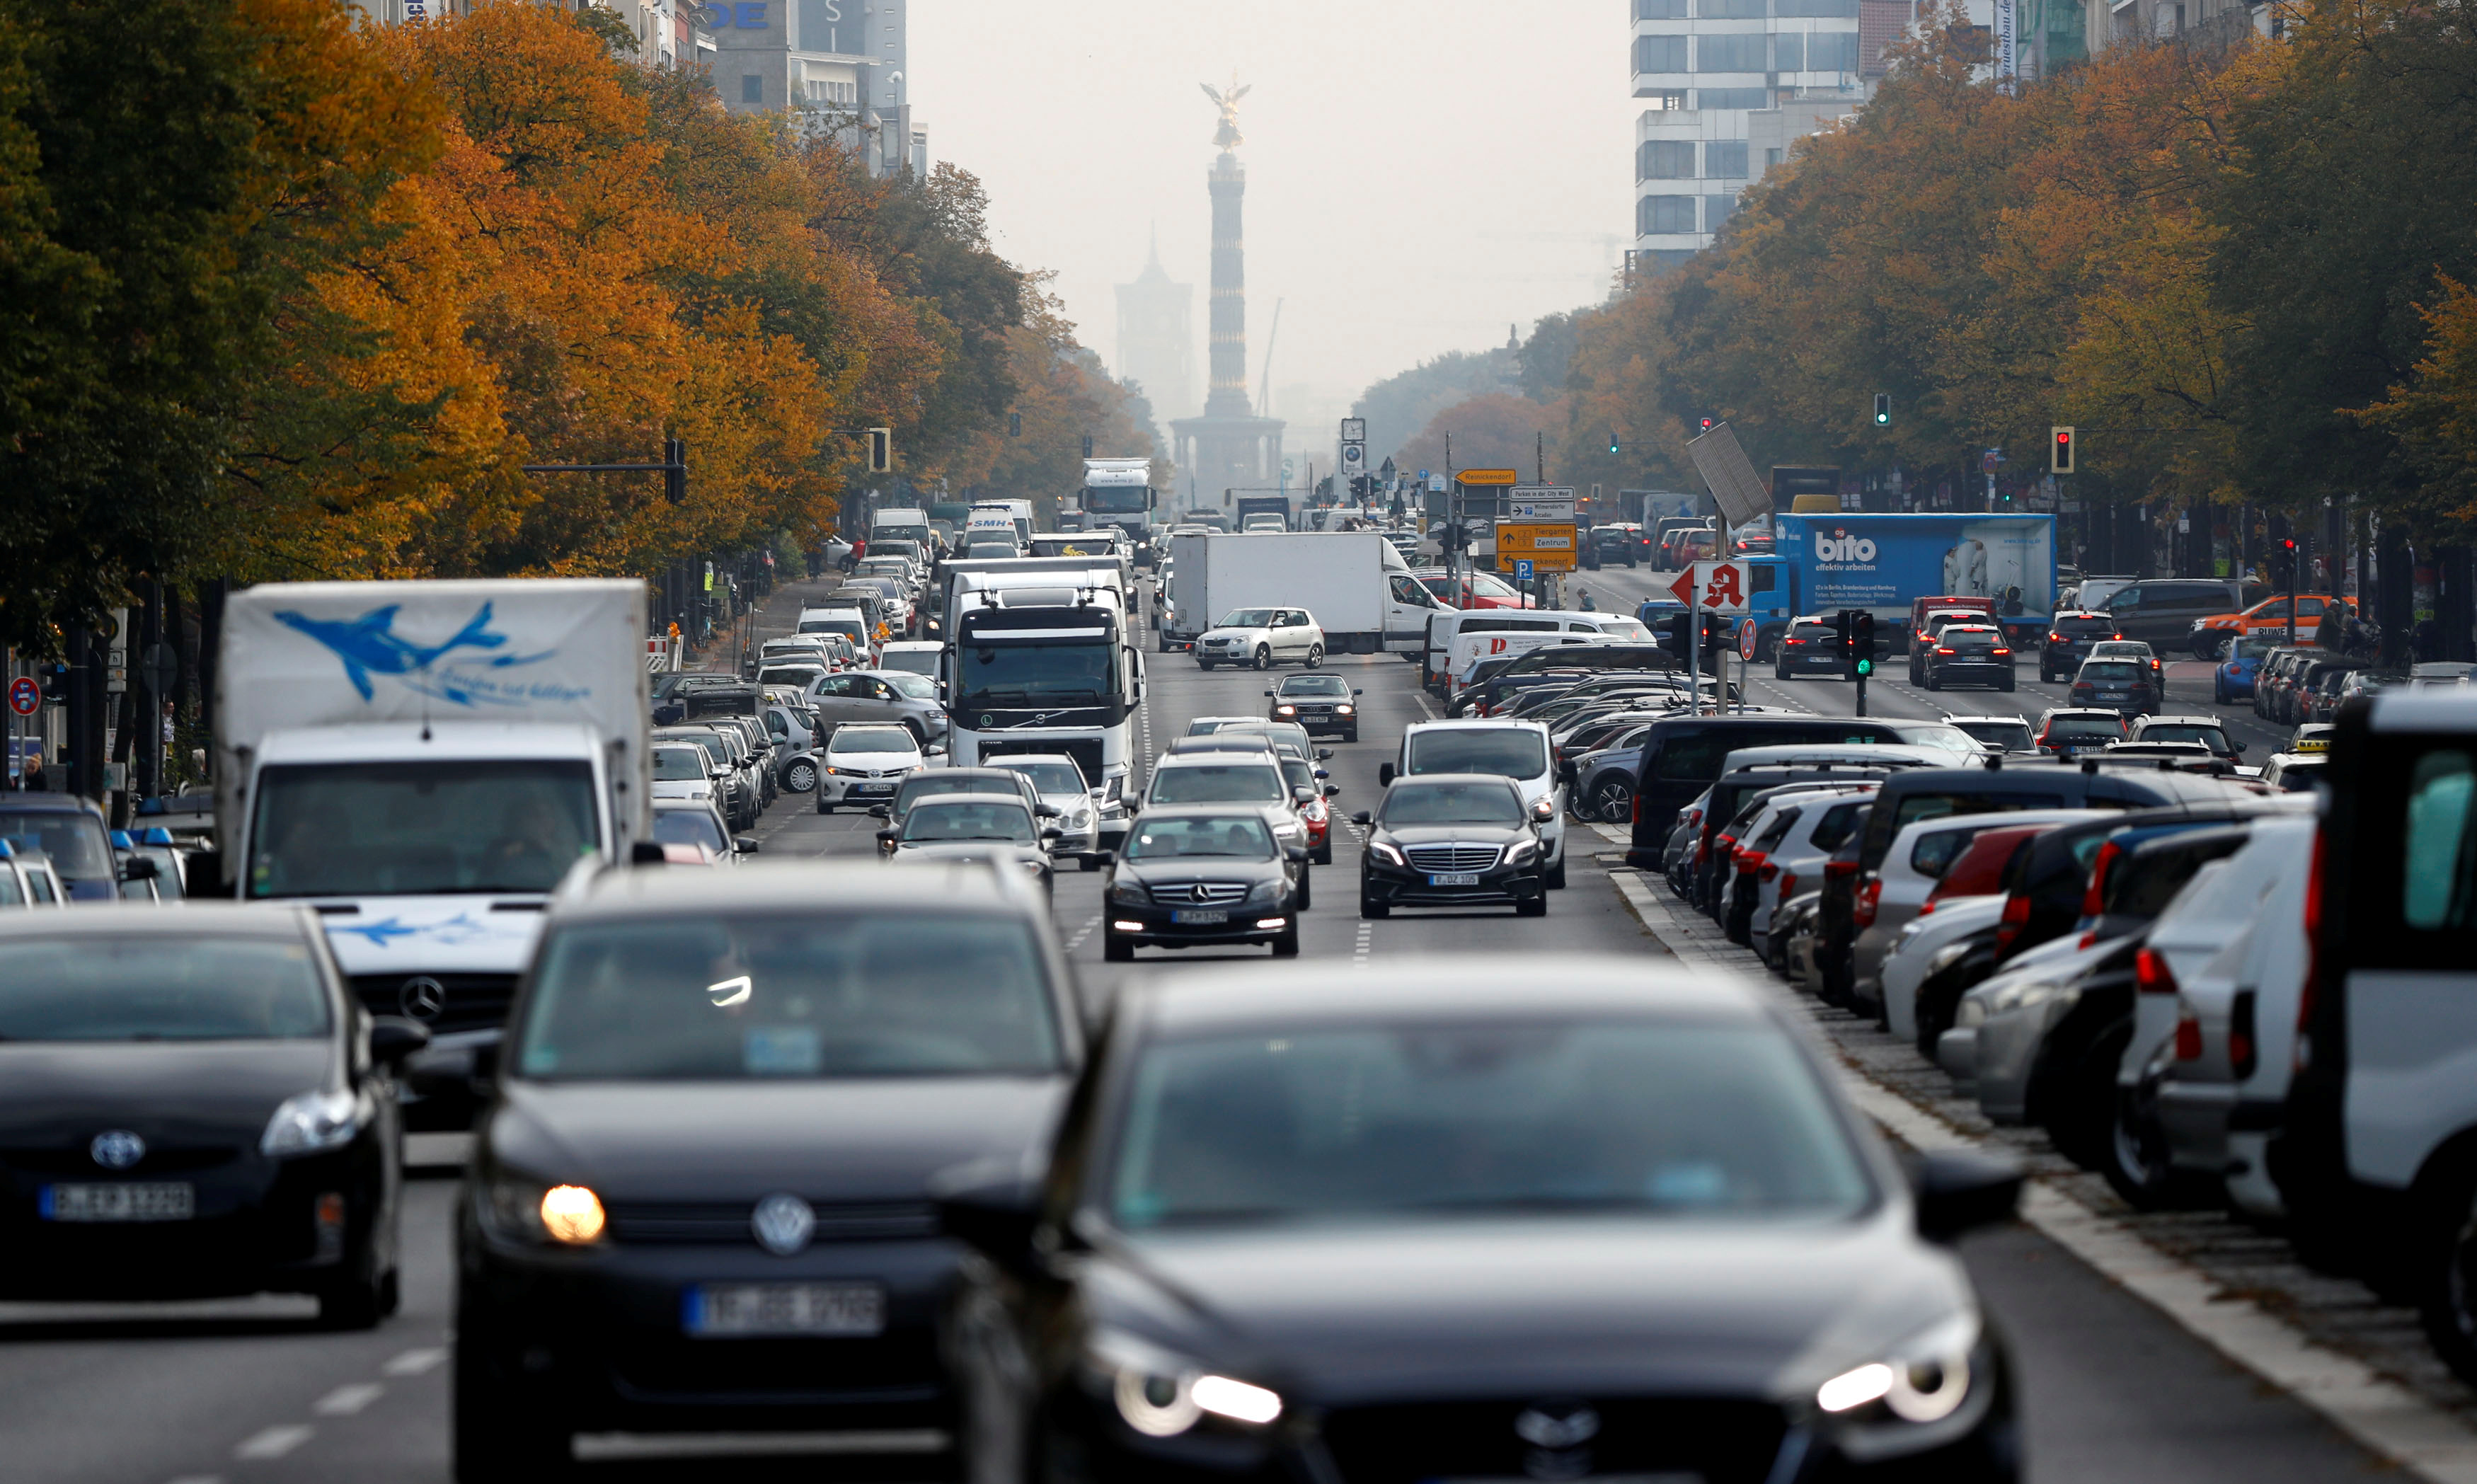 Cars are seen at Kaiserdamm street, which could be affected by a court hearing on case seeking diesel cars ban in Berlin, Germany,